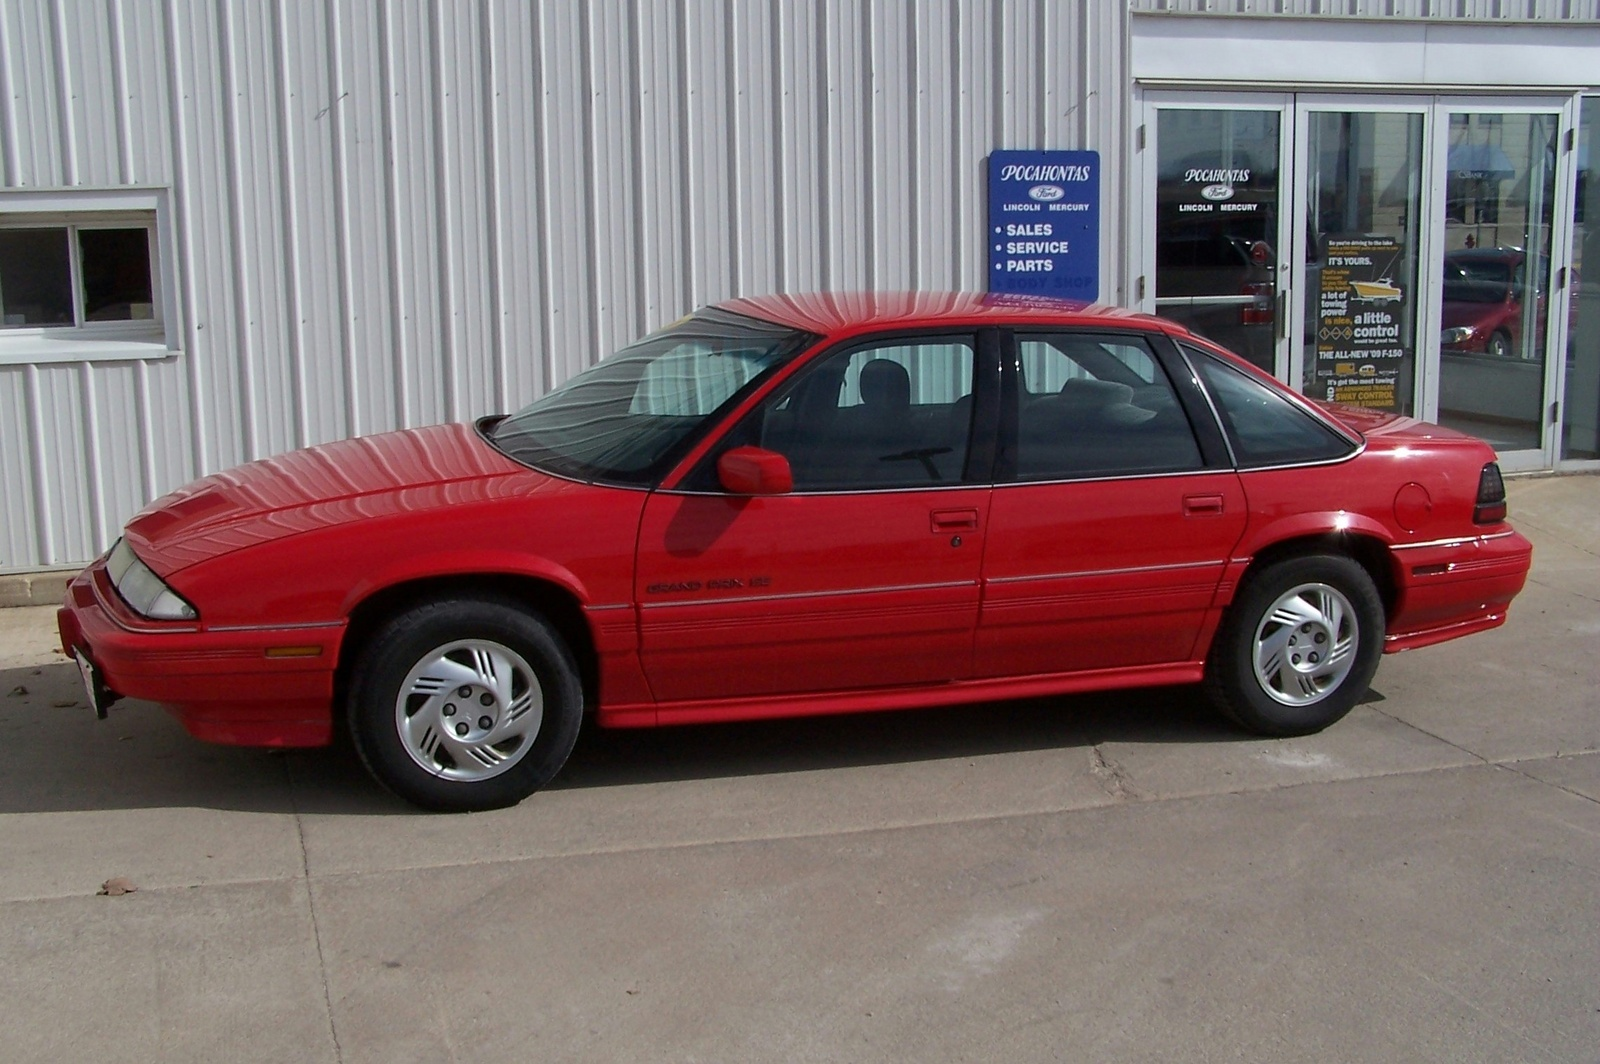 1996 Pontiac Grand Prix, For Sale in youngstown,Ohio/Eastside $550 dollars  lost